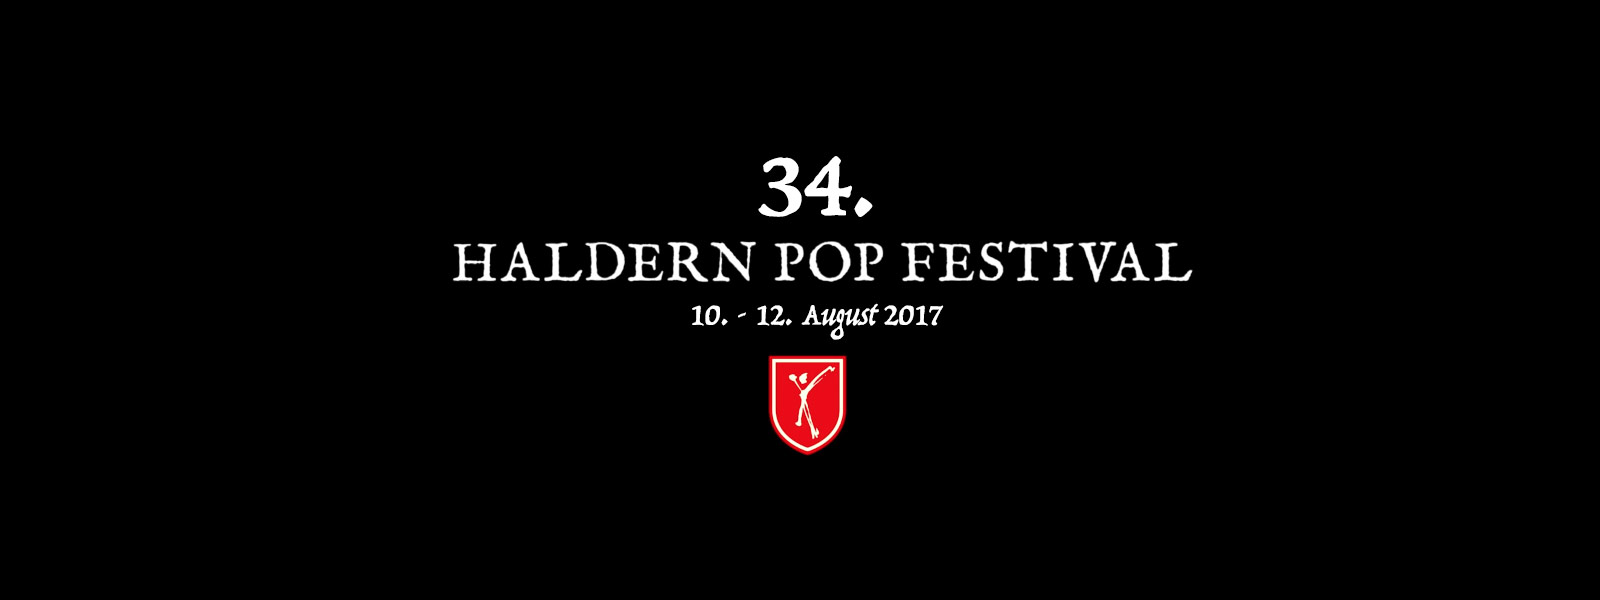 haldern-pop-slider2017